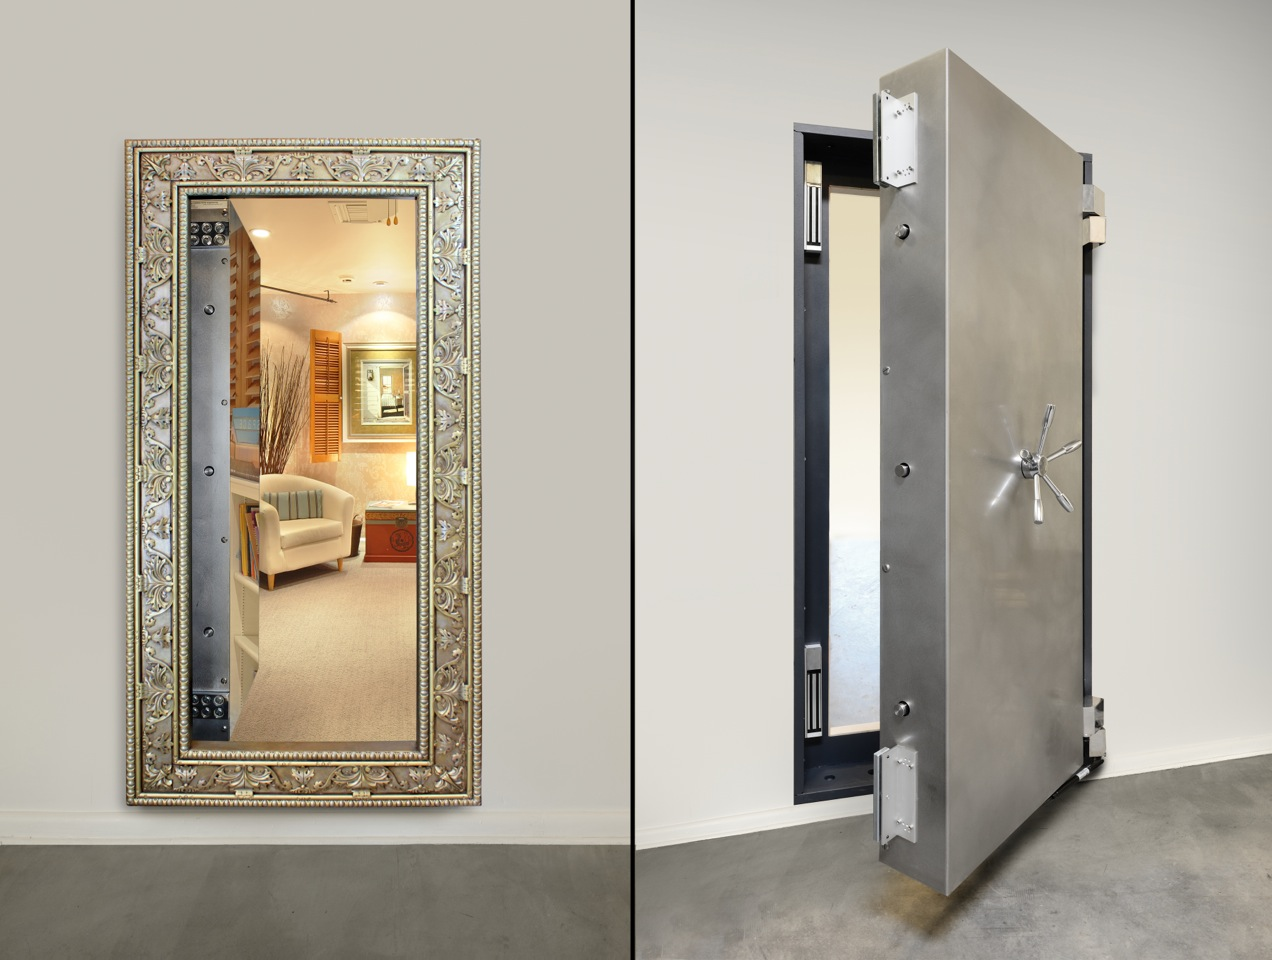 Vault doors secret vault doors for homes highly secure custom example walk in gun safes using our secret doors planetlyrics Choice Image